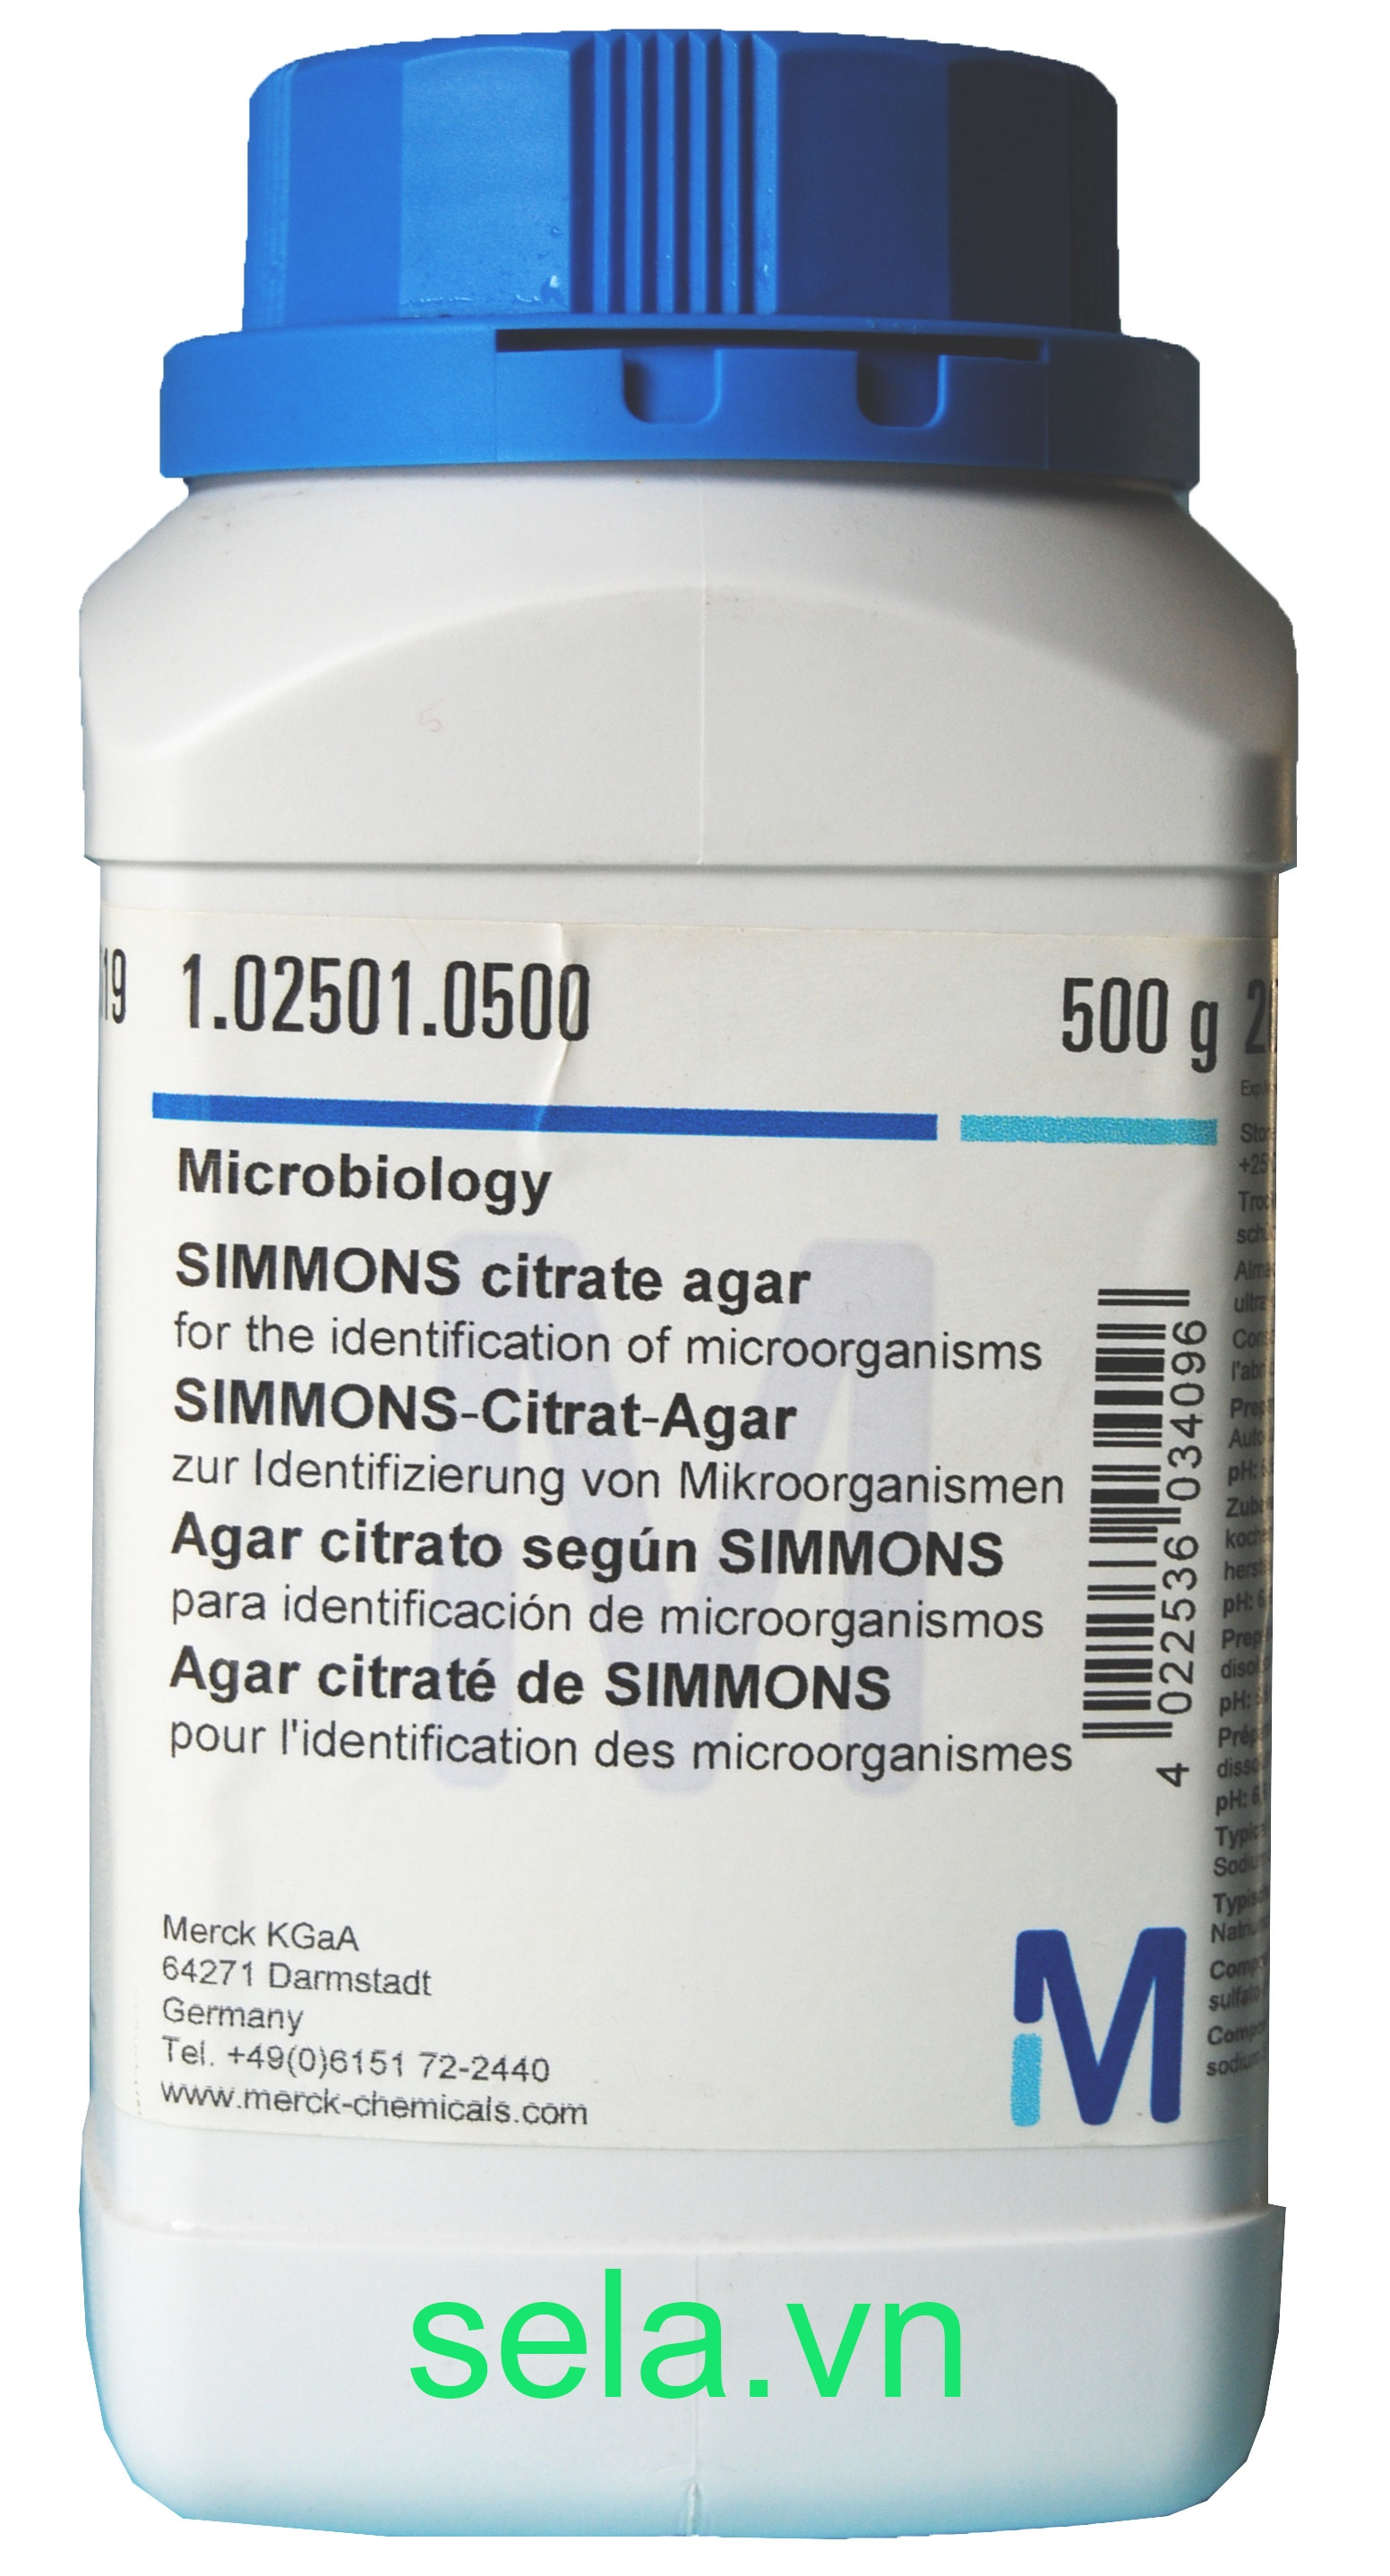 SIMMONS citrate agar for the identification of microorganisms